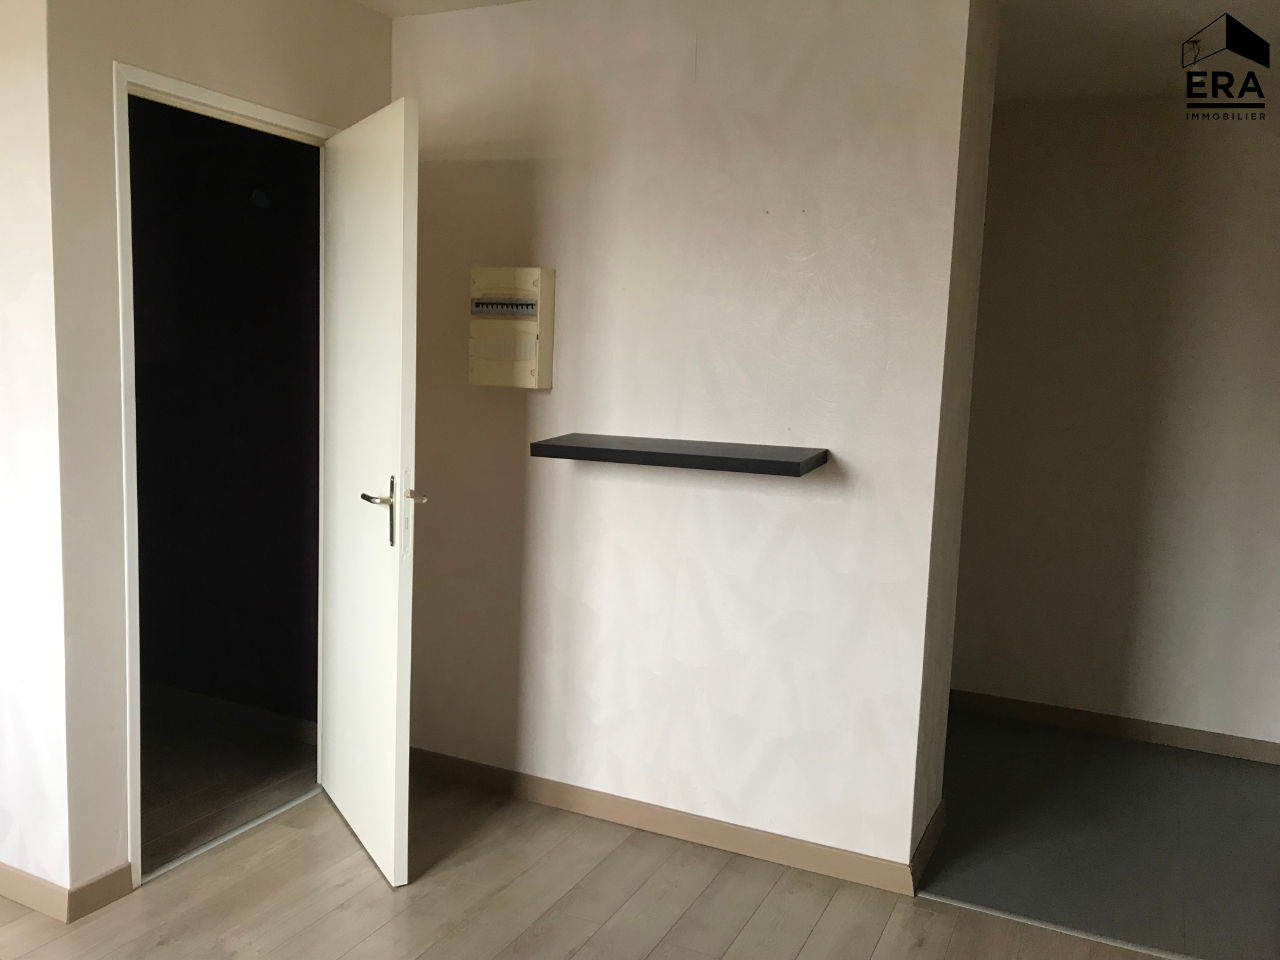 Appartement en vente à SAINT QUENTIN